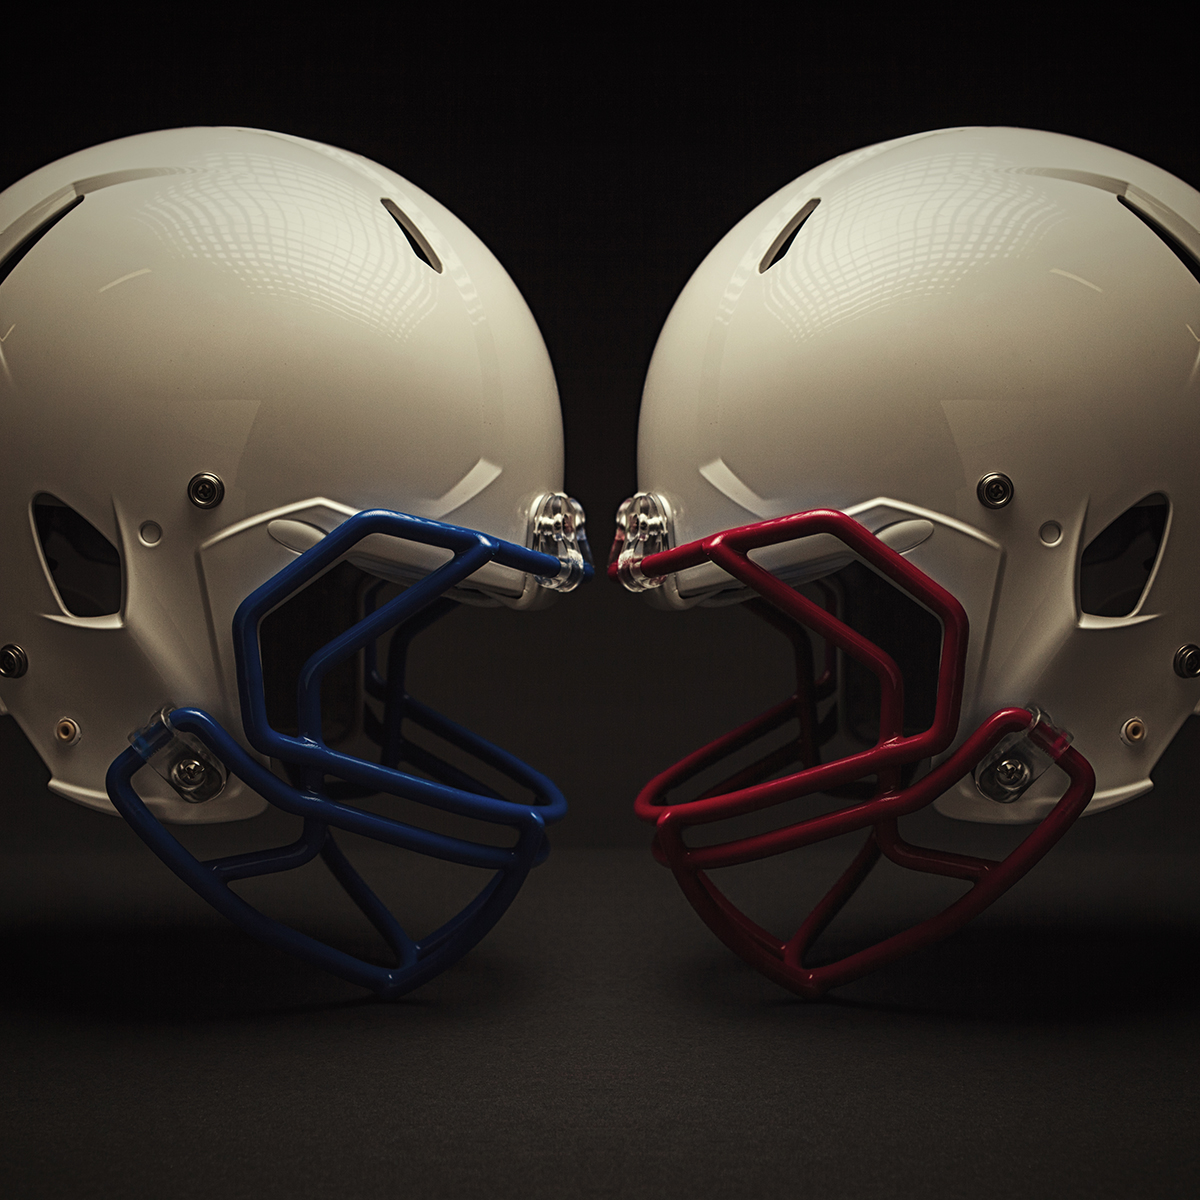 Two football helmets leaning against each other at the forehead.